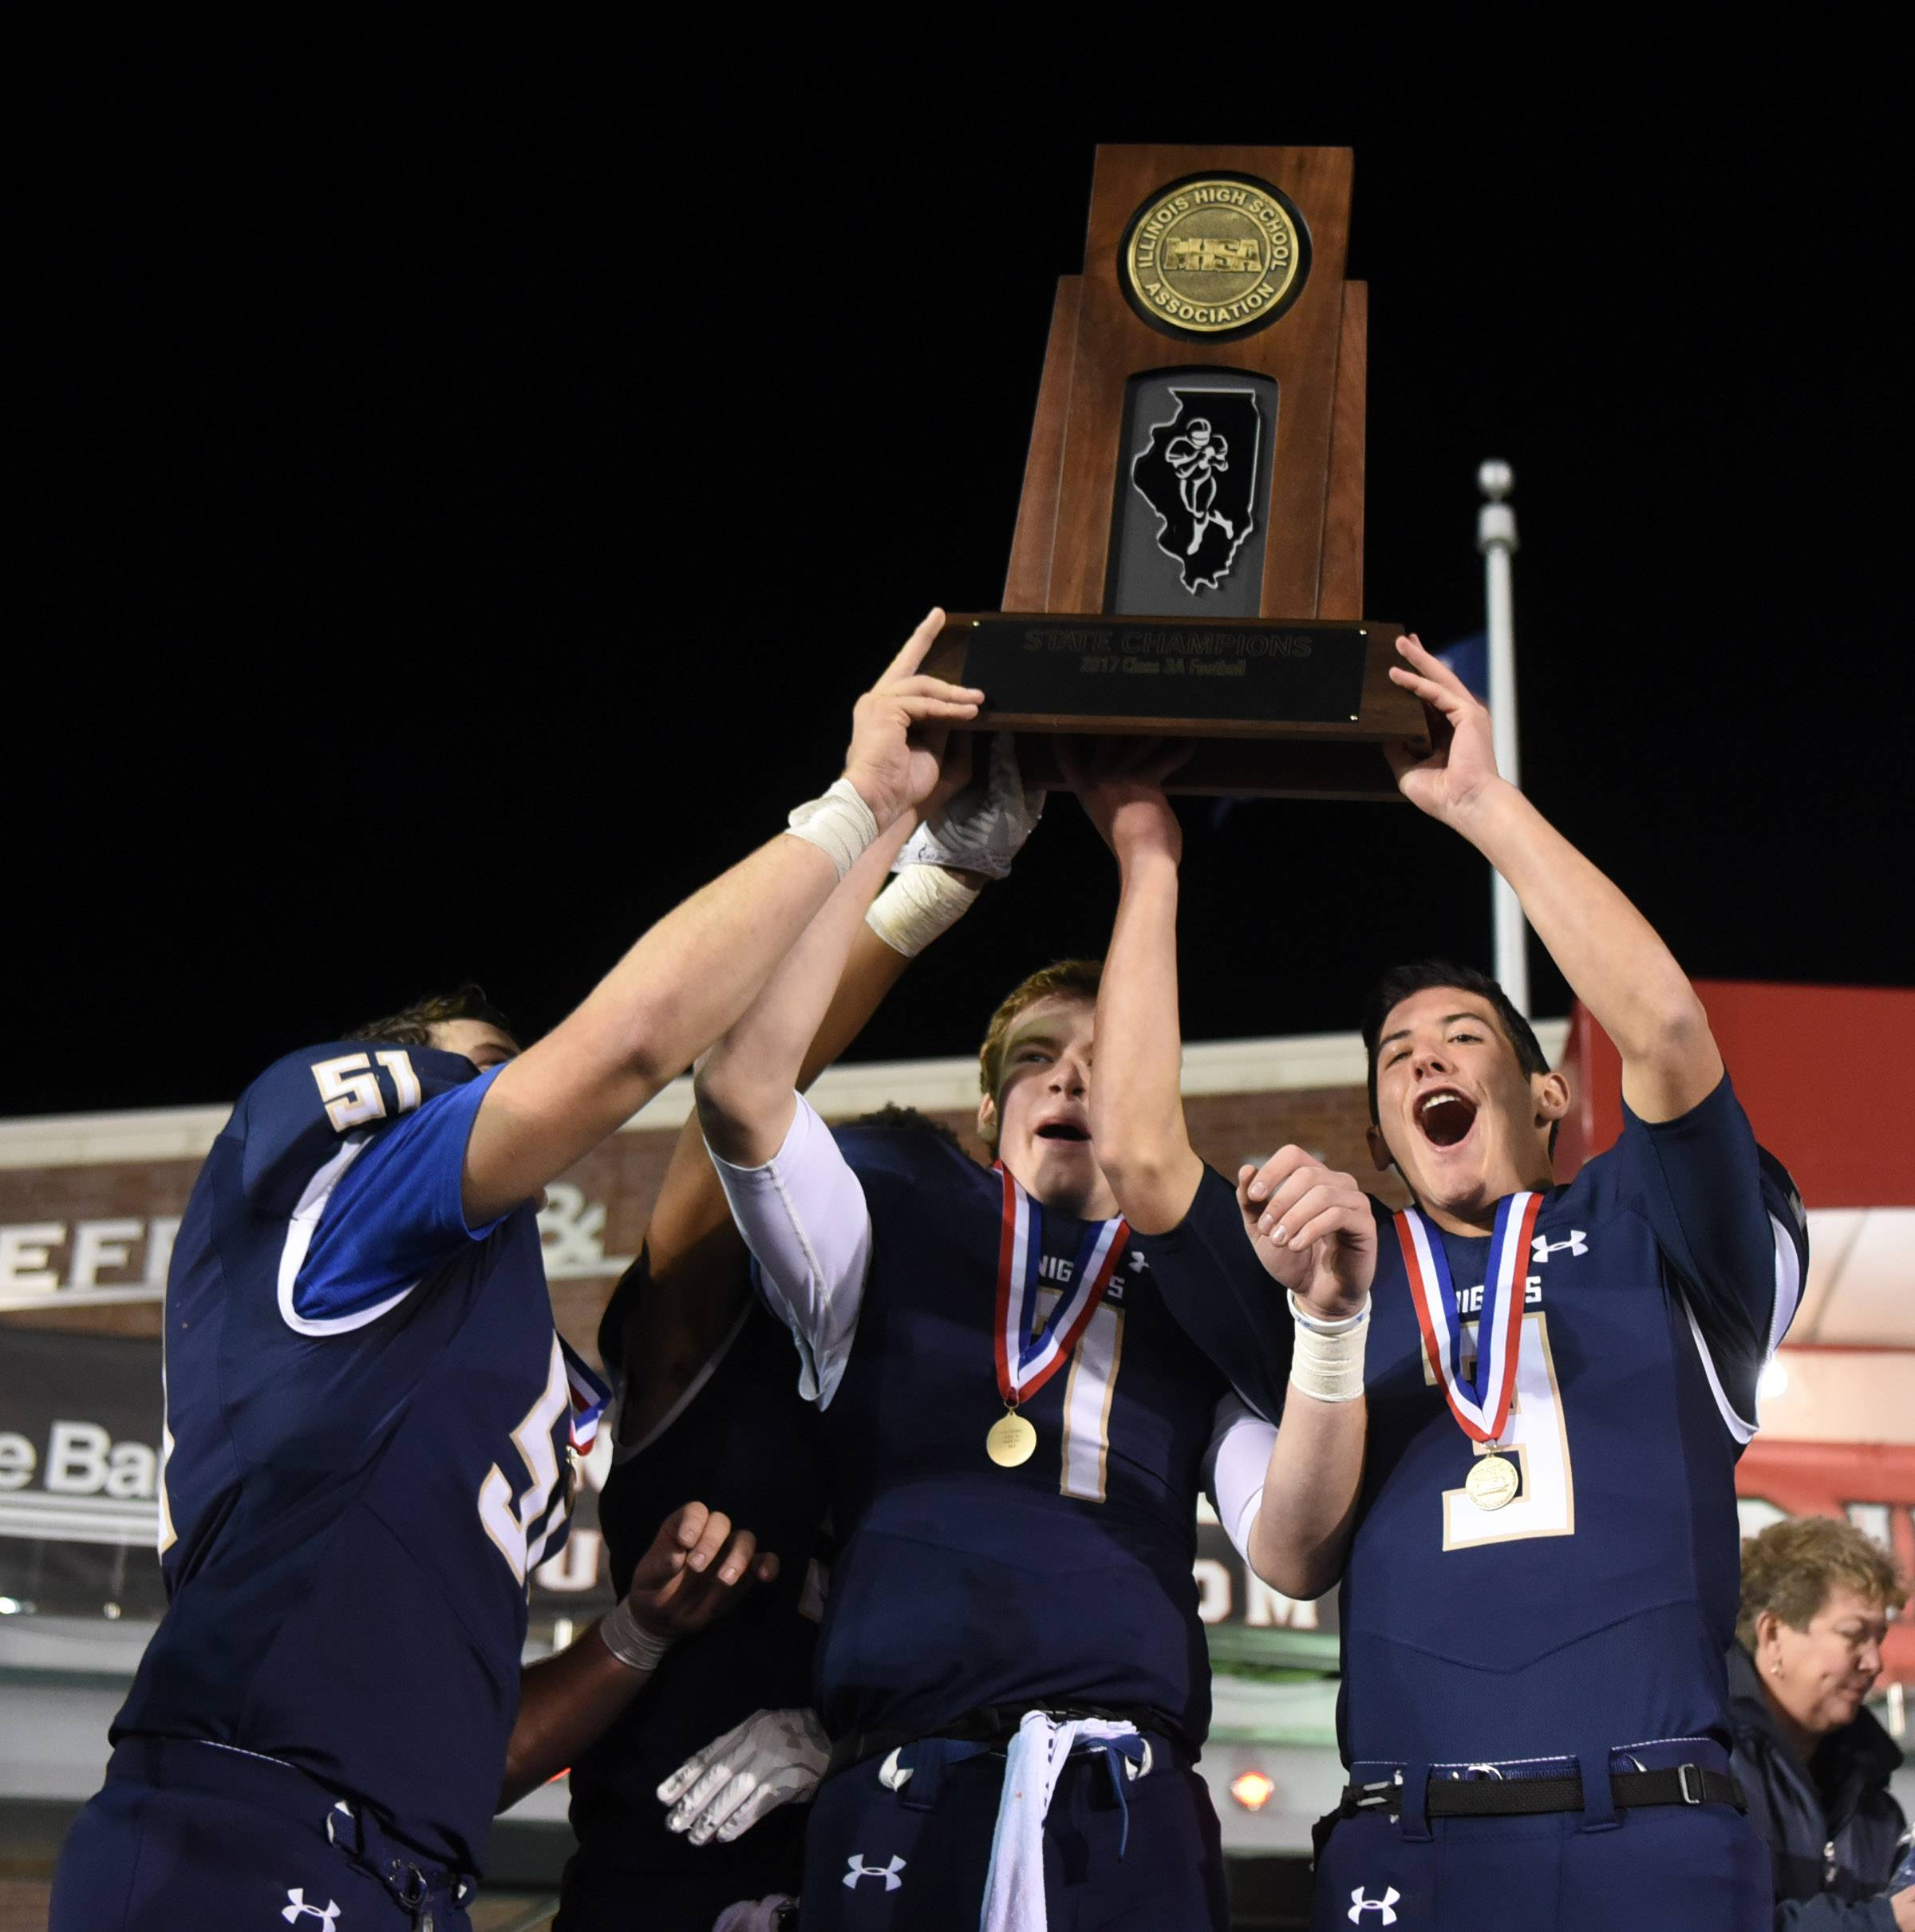 The State Championship trophy is raised by, from left, IC Catholic's Dylan Packer, Khalil Saunders, CJ West and Luke Ricobene at the conclusion of the Class 3A championship came at NIU's Huskie Stadium in DeKalb Friday. IC Catholic defeated Pleasant Plains 35-0.